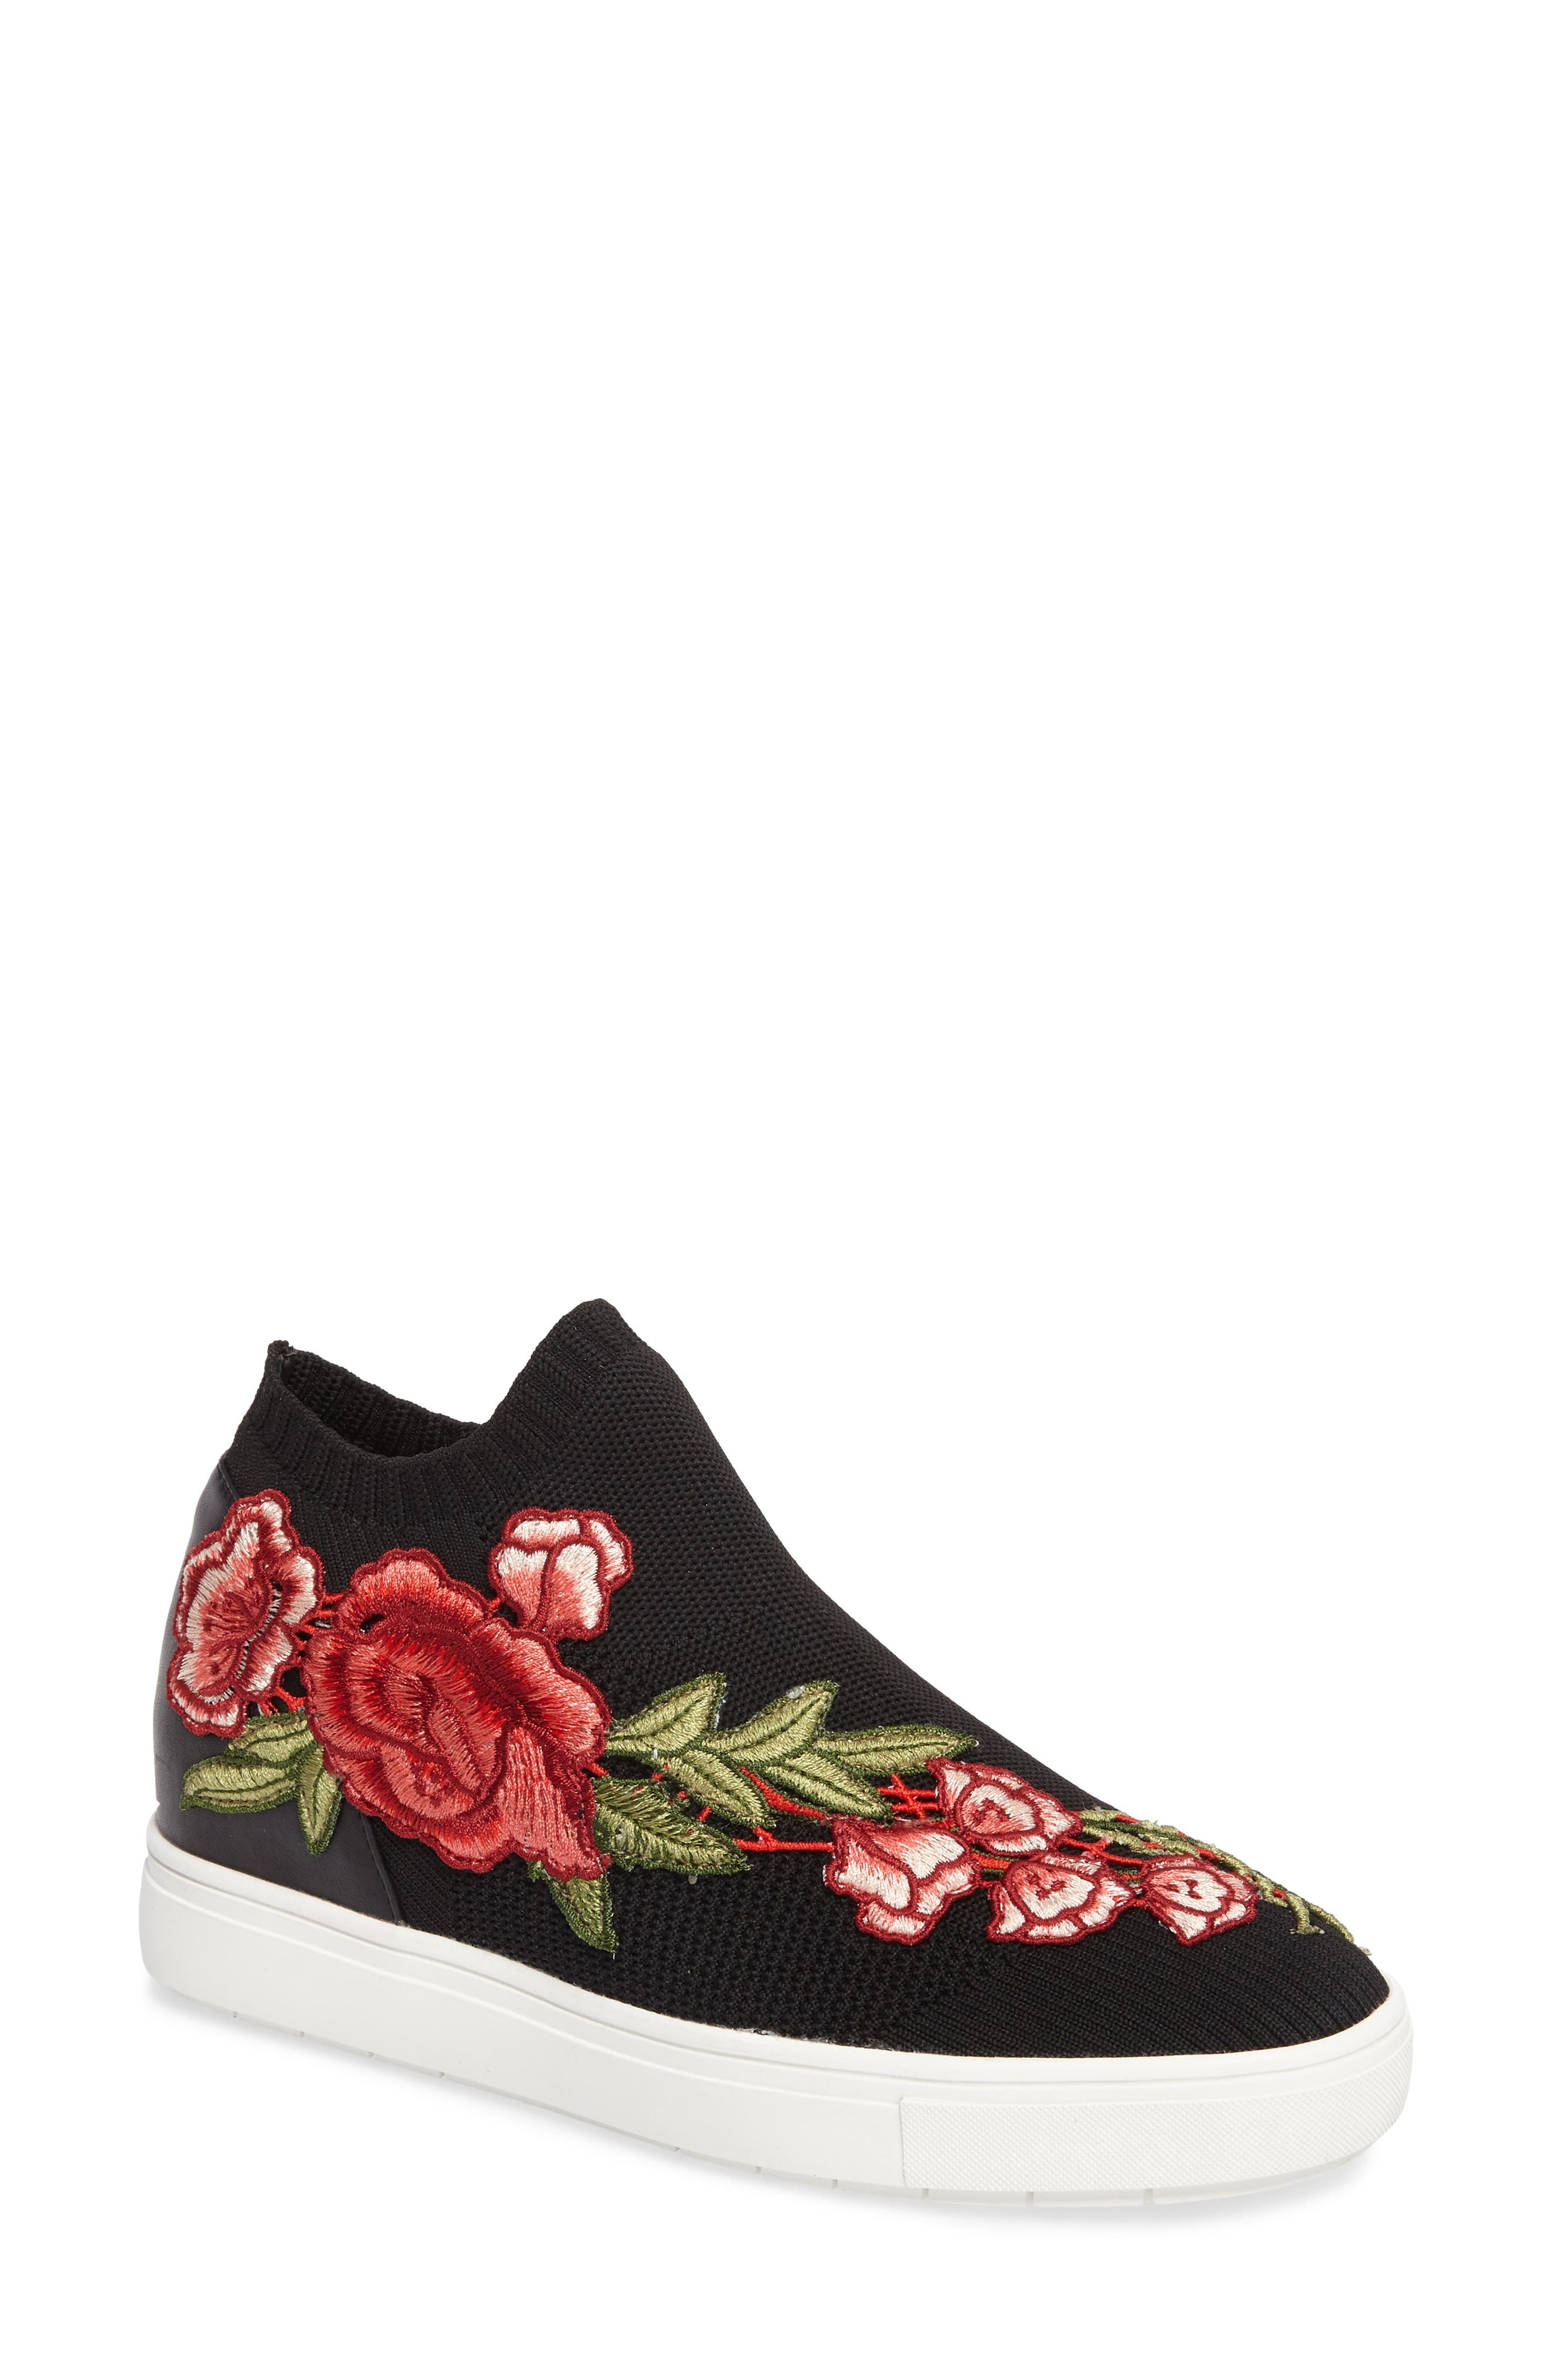 Steve Madden Sly Hidden Wedge Knit Sneaker (Women)